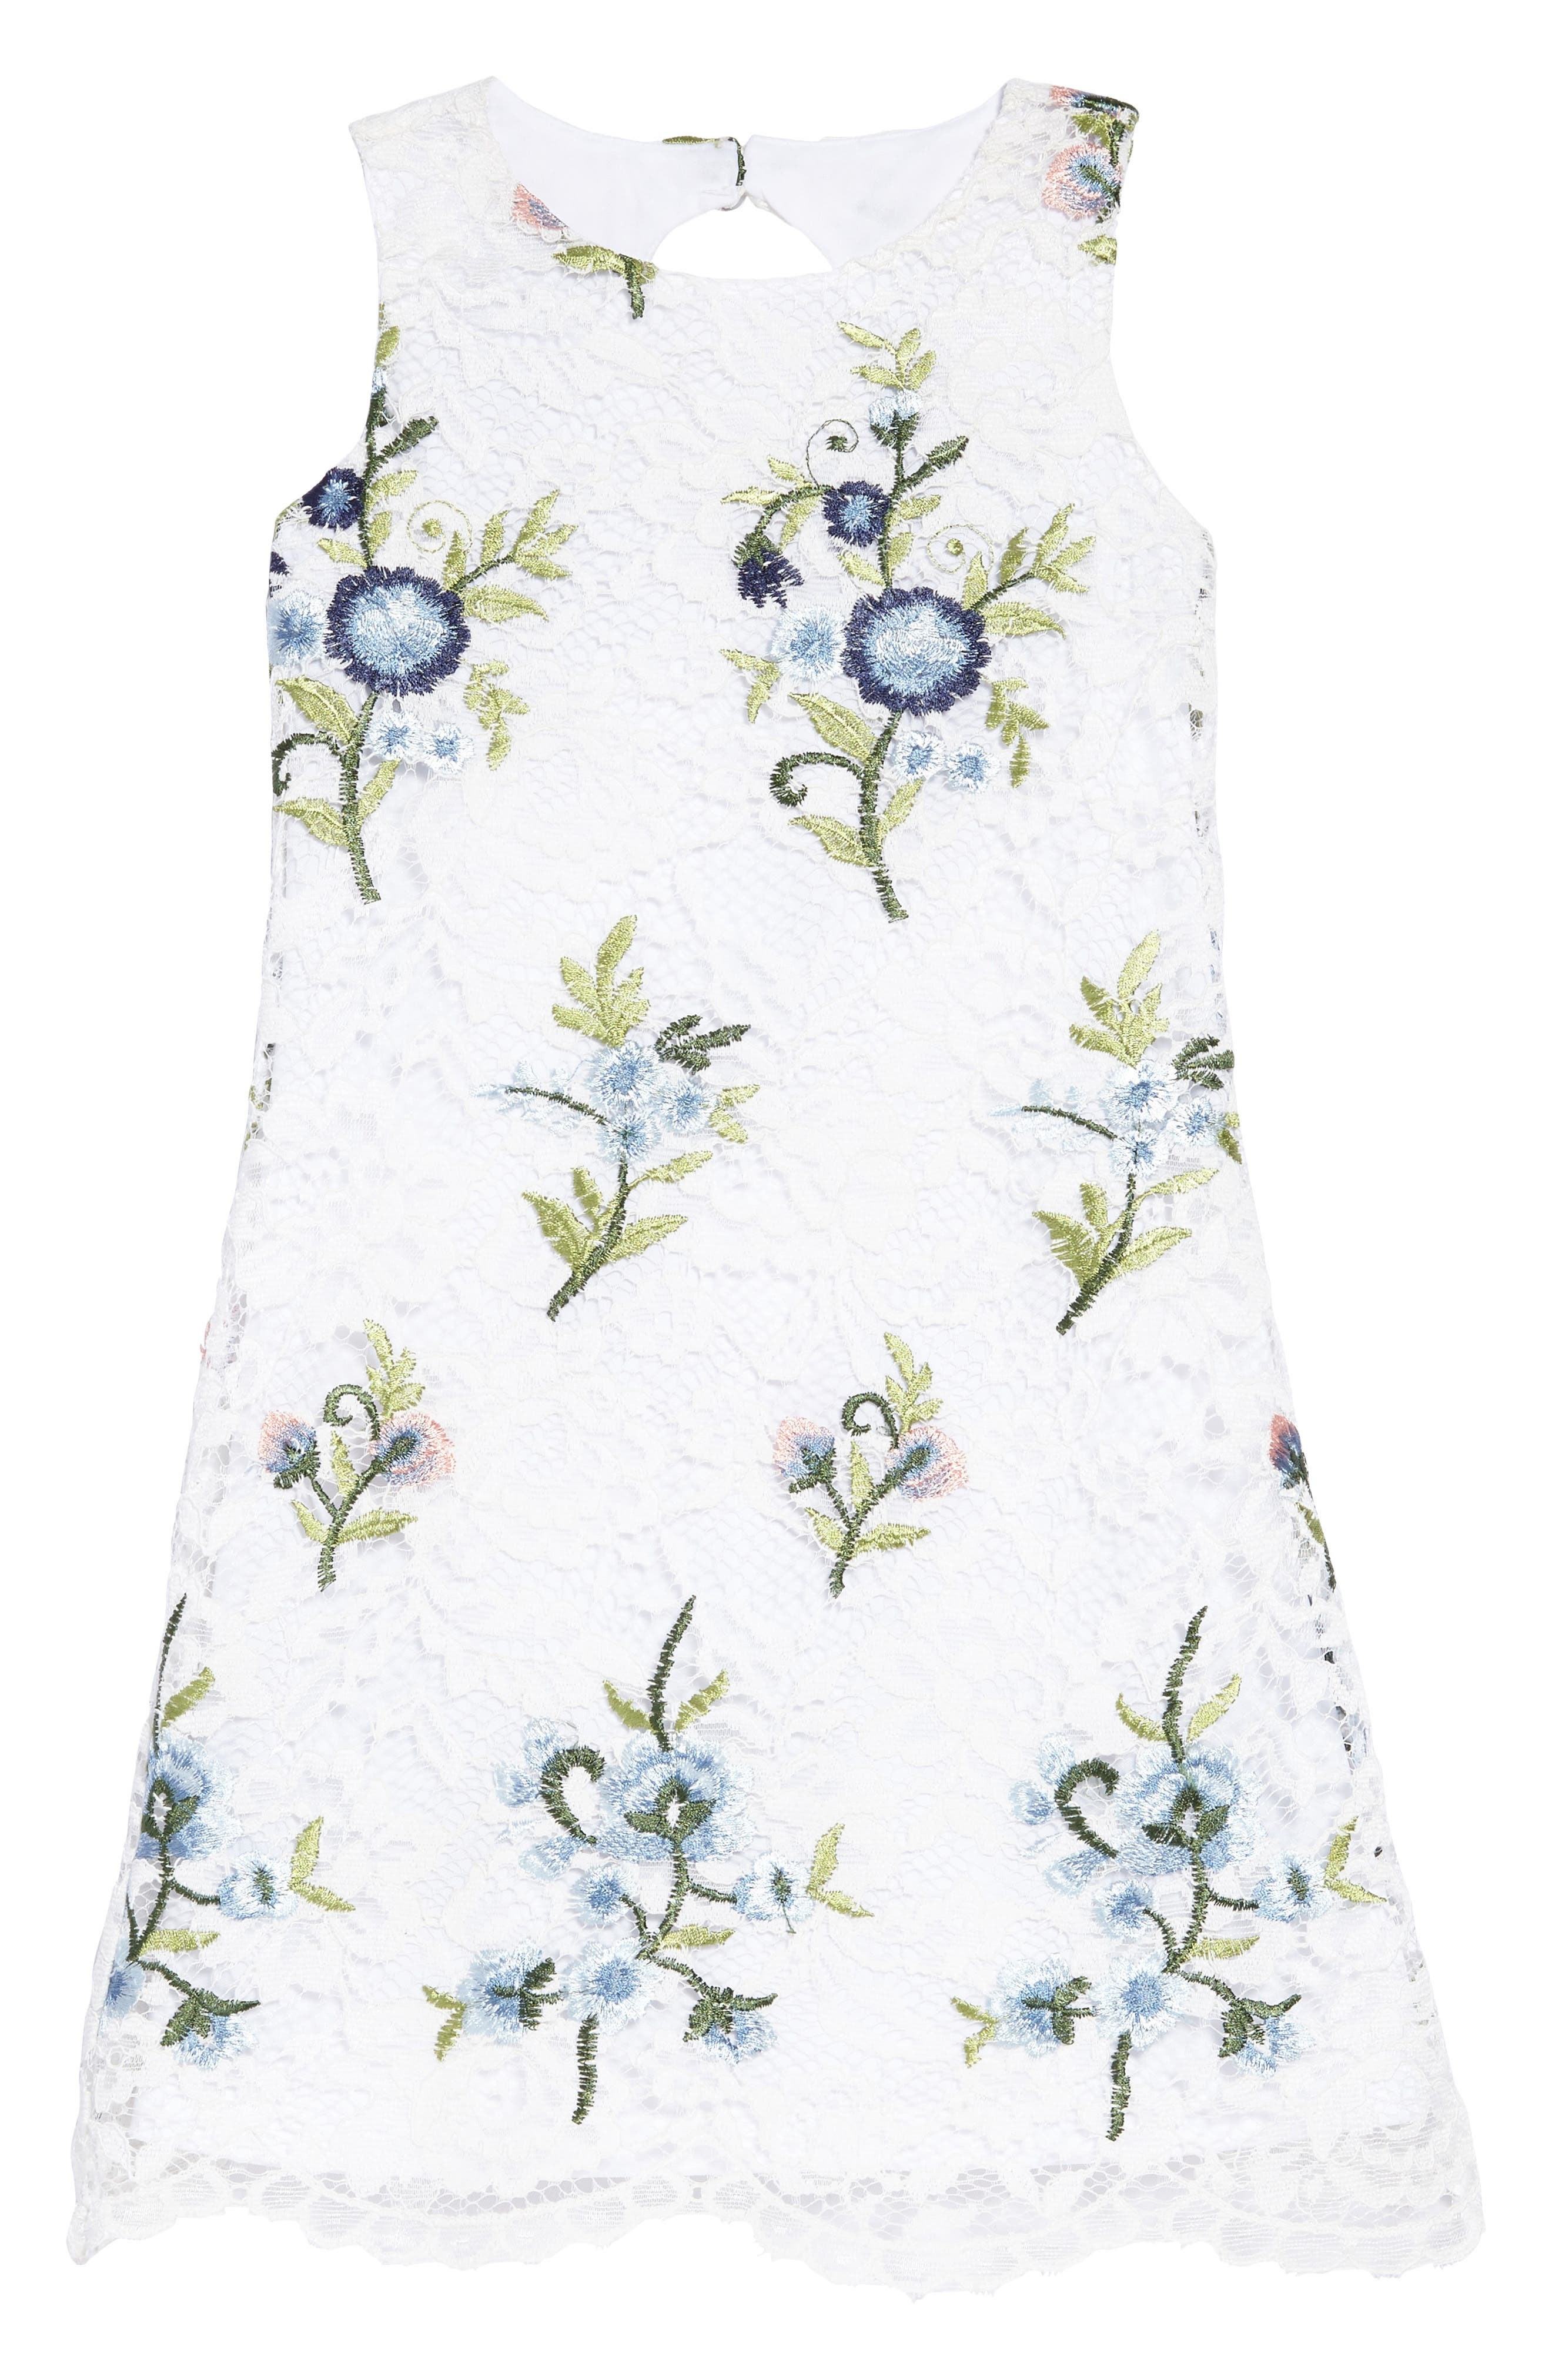 Embroidered Floral Shift Dress,                             Main thumbnail 1, color,                             100